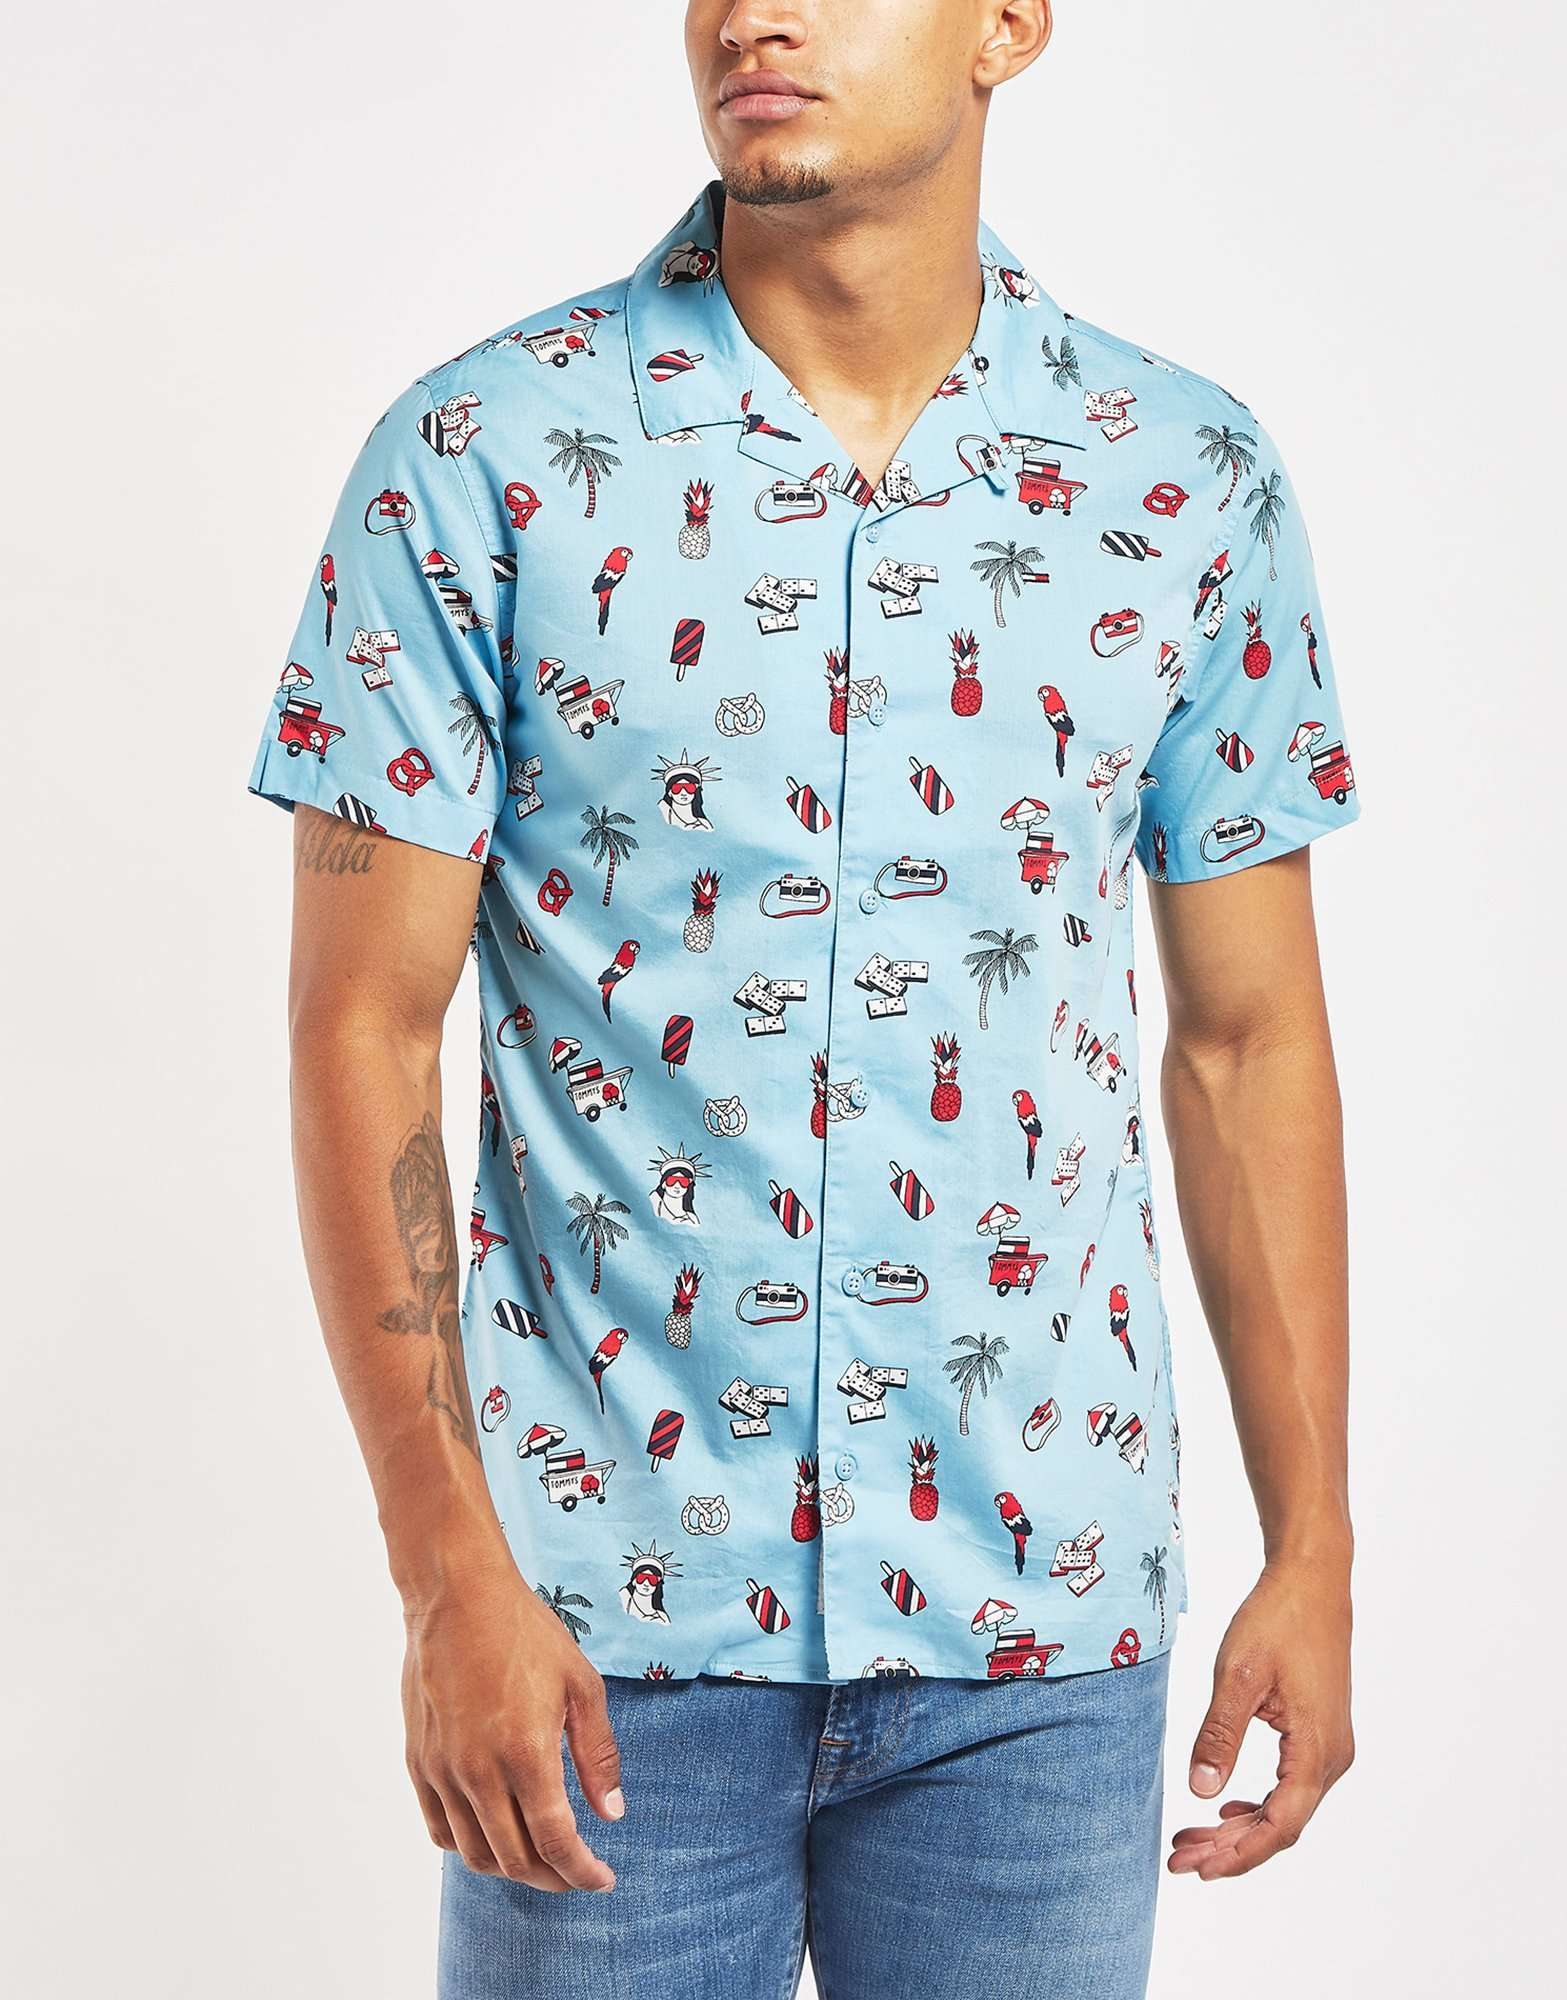 Tommy Jeans Ice Cream Short Sleeve Shirt - Online Exclusive